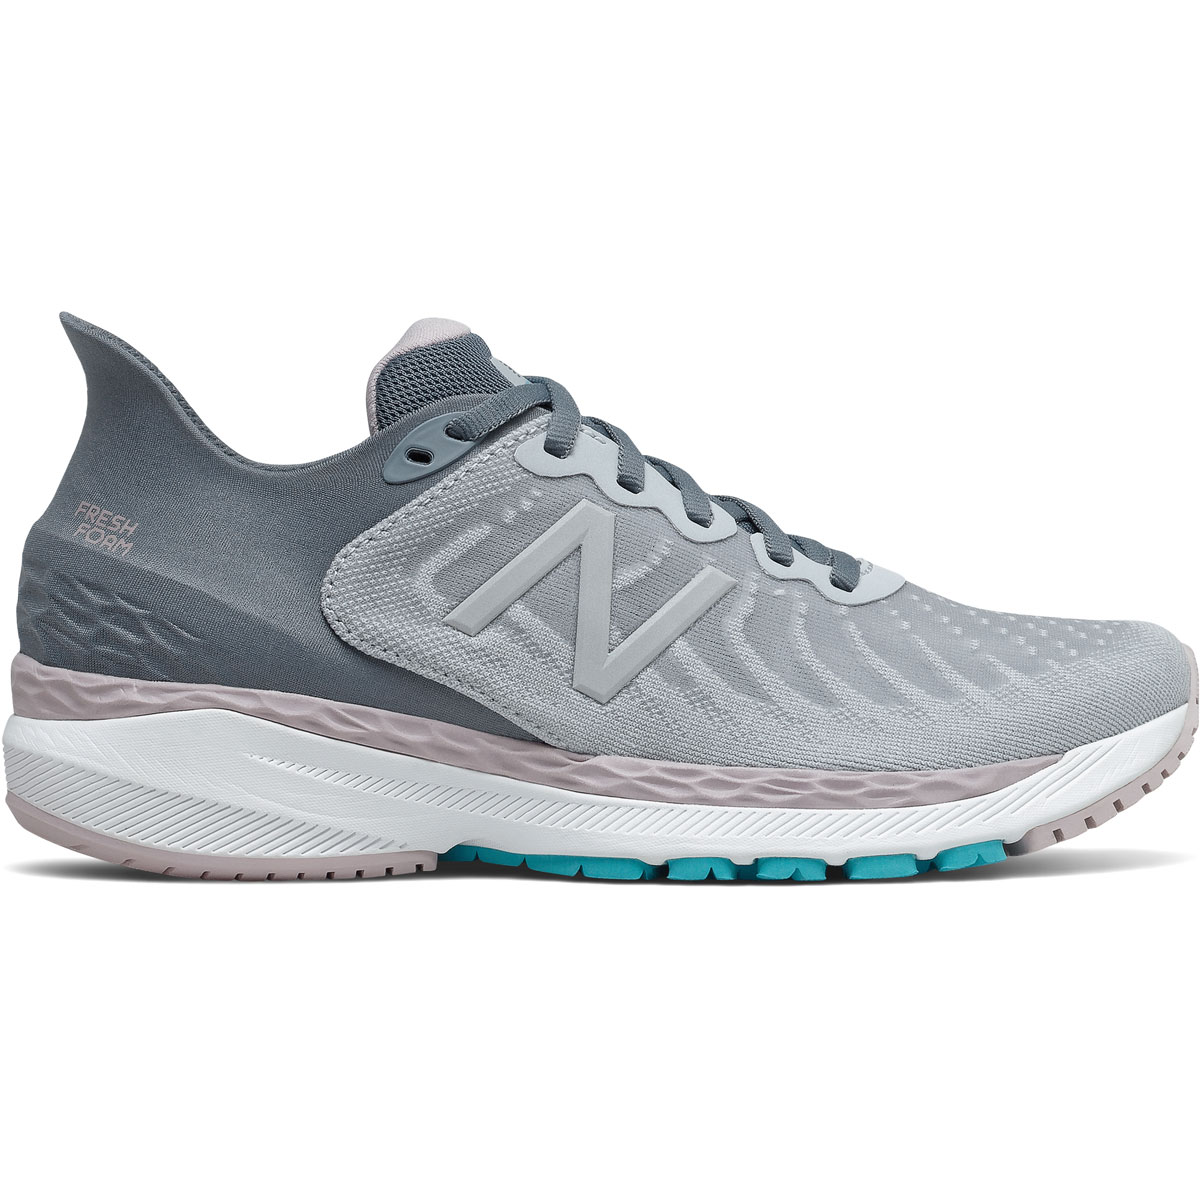 Women's New Balance 860V11 Running Shoe - Color: Light Cyclone/Logwood  - Size: 5 - Width: Narrow, Light Cyclone/Logwood, large, image 1